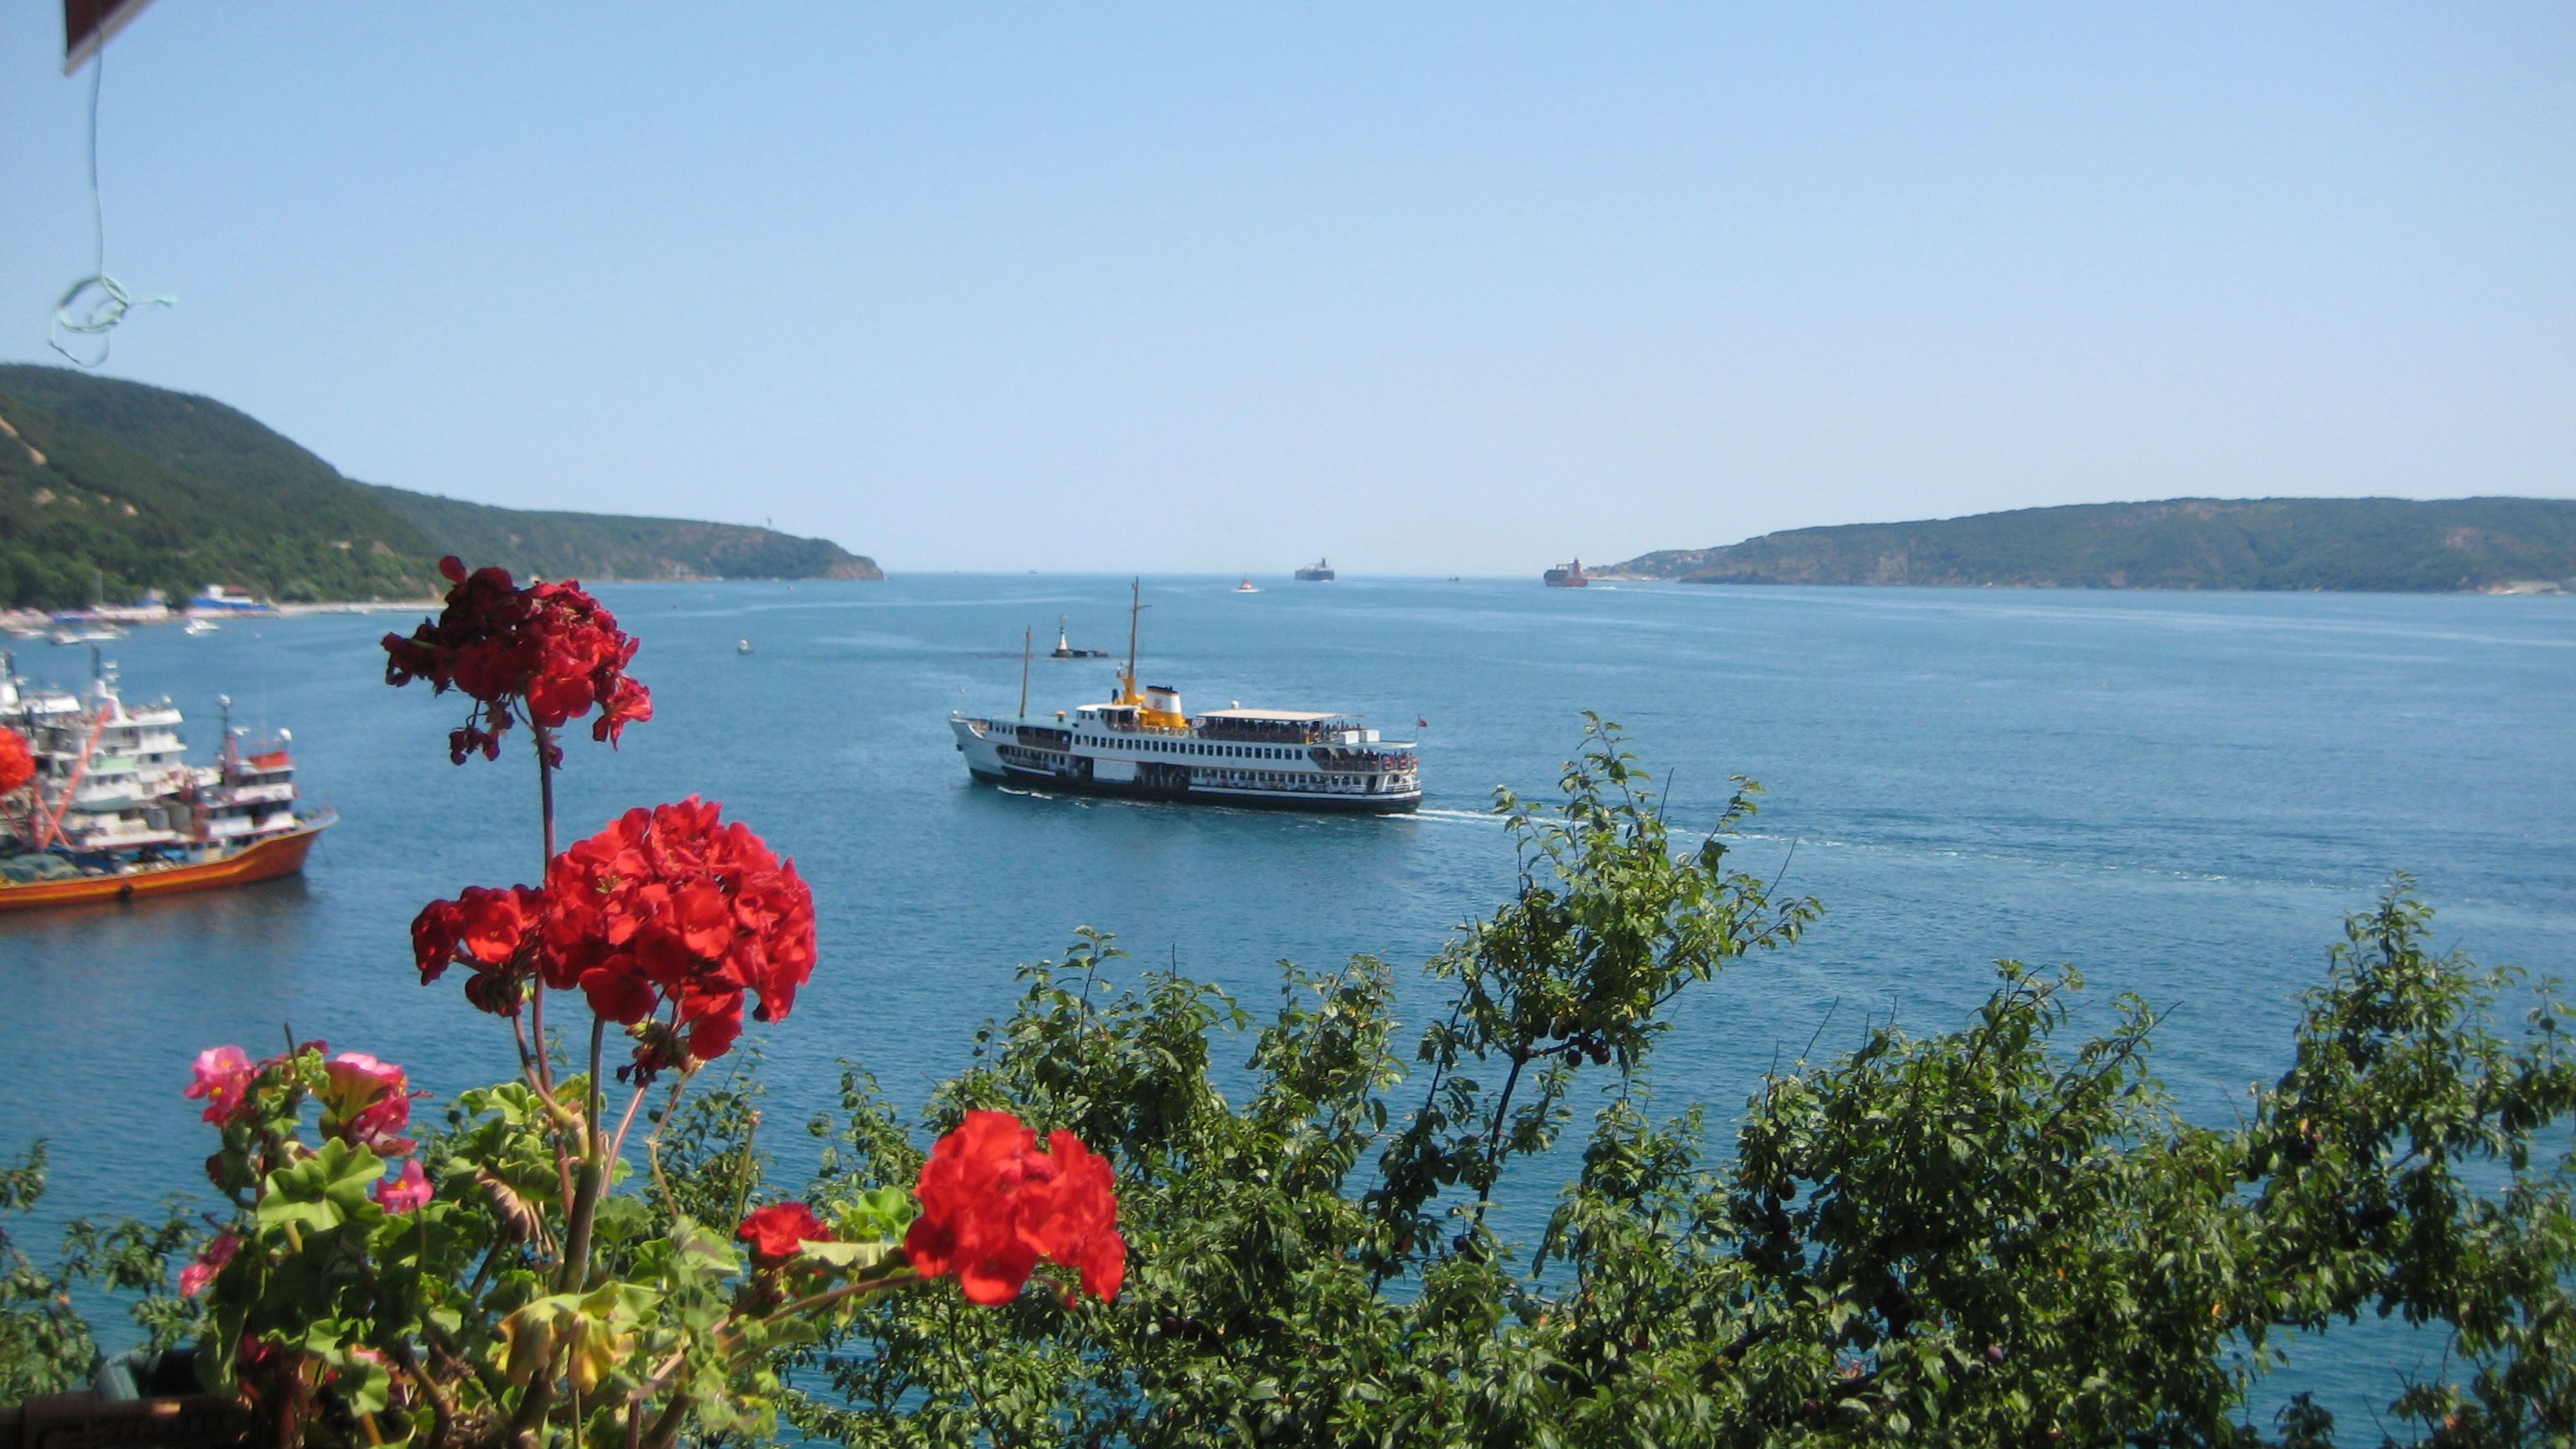 From Rumeli Kavak view of the Bosphorus and Black Sea